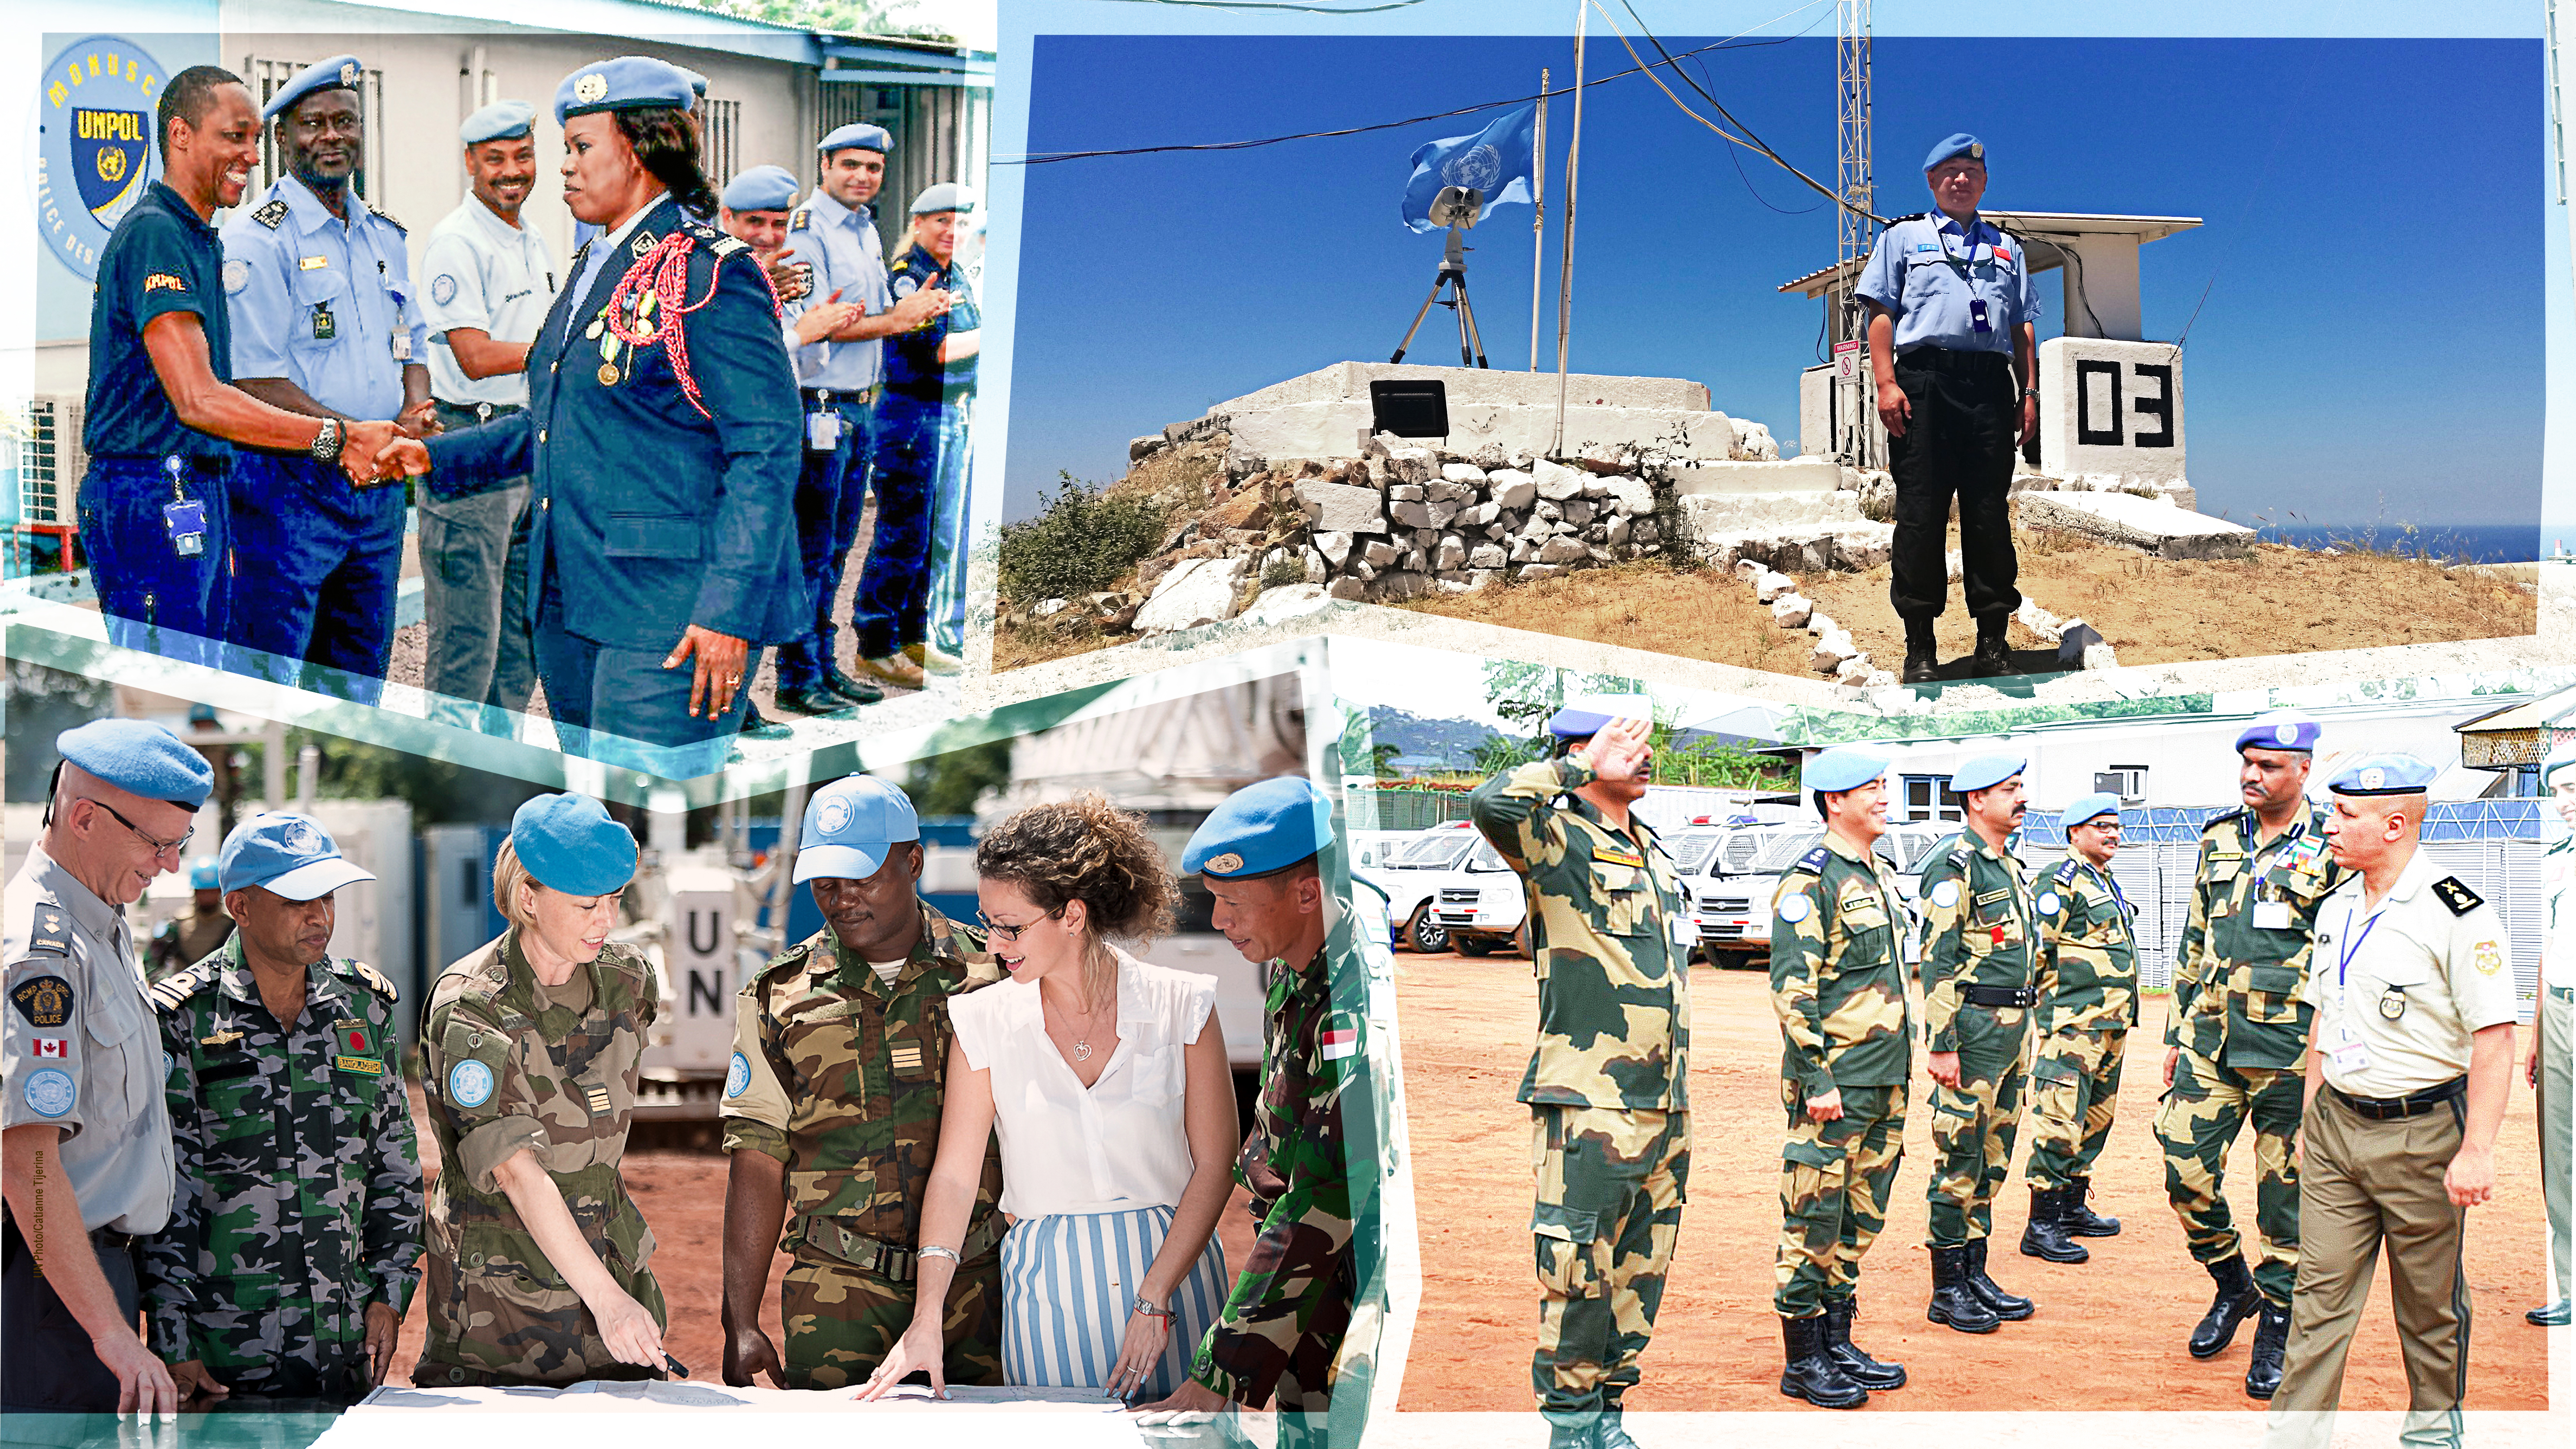 SPC staff supporting various peacekeeping missions